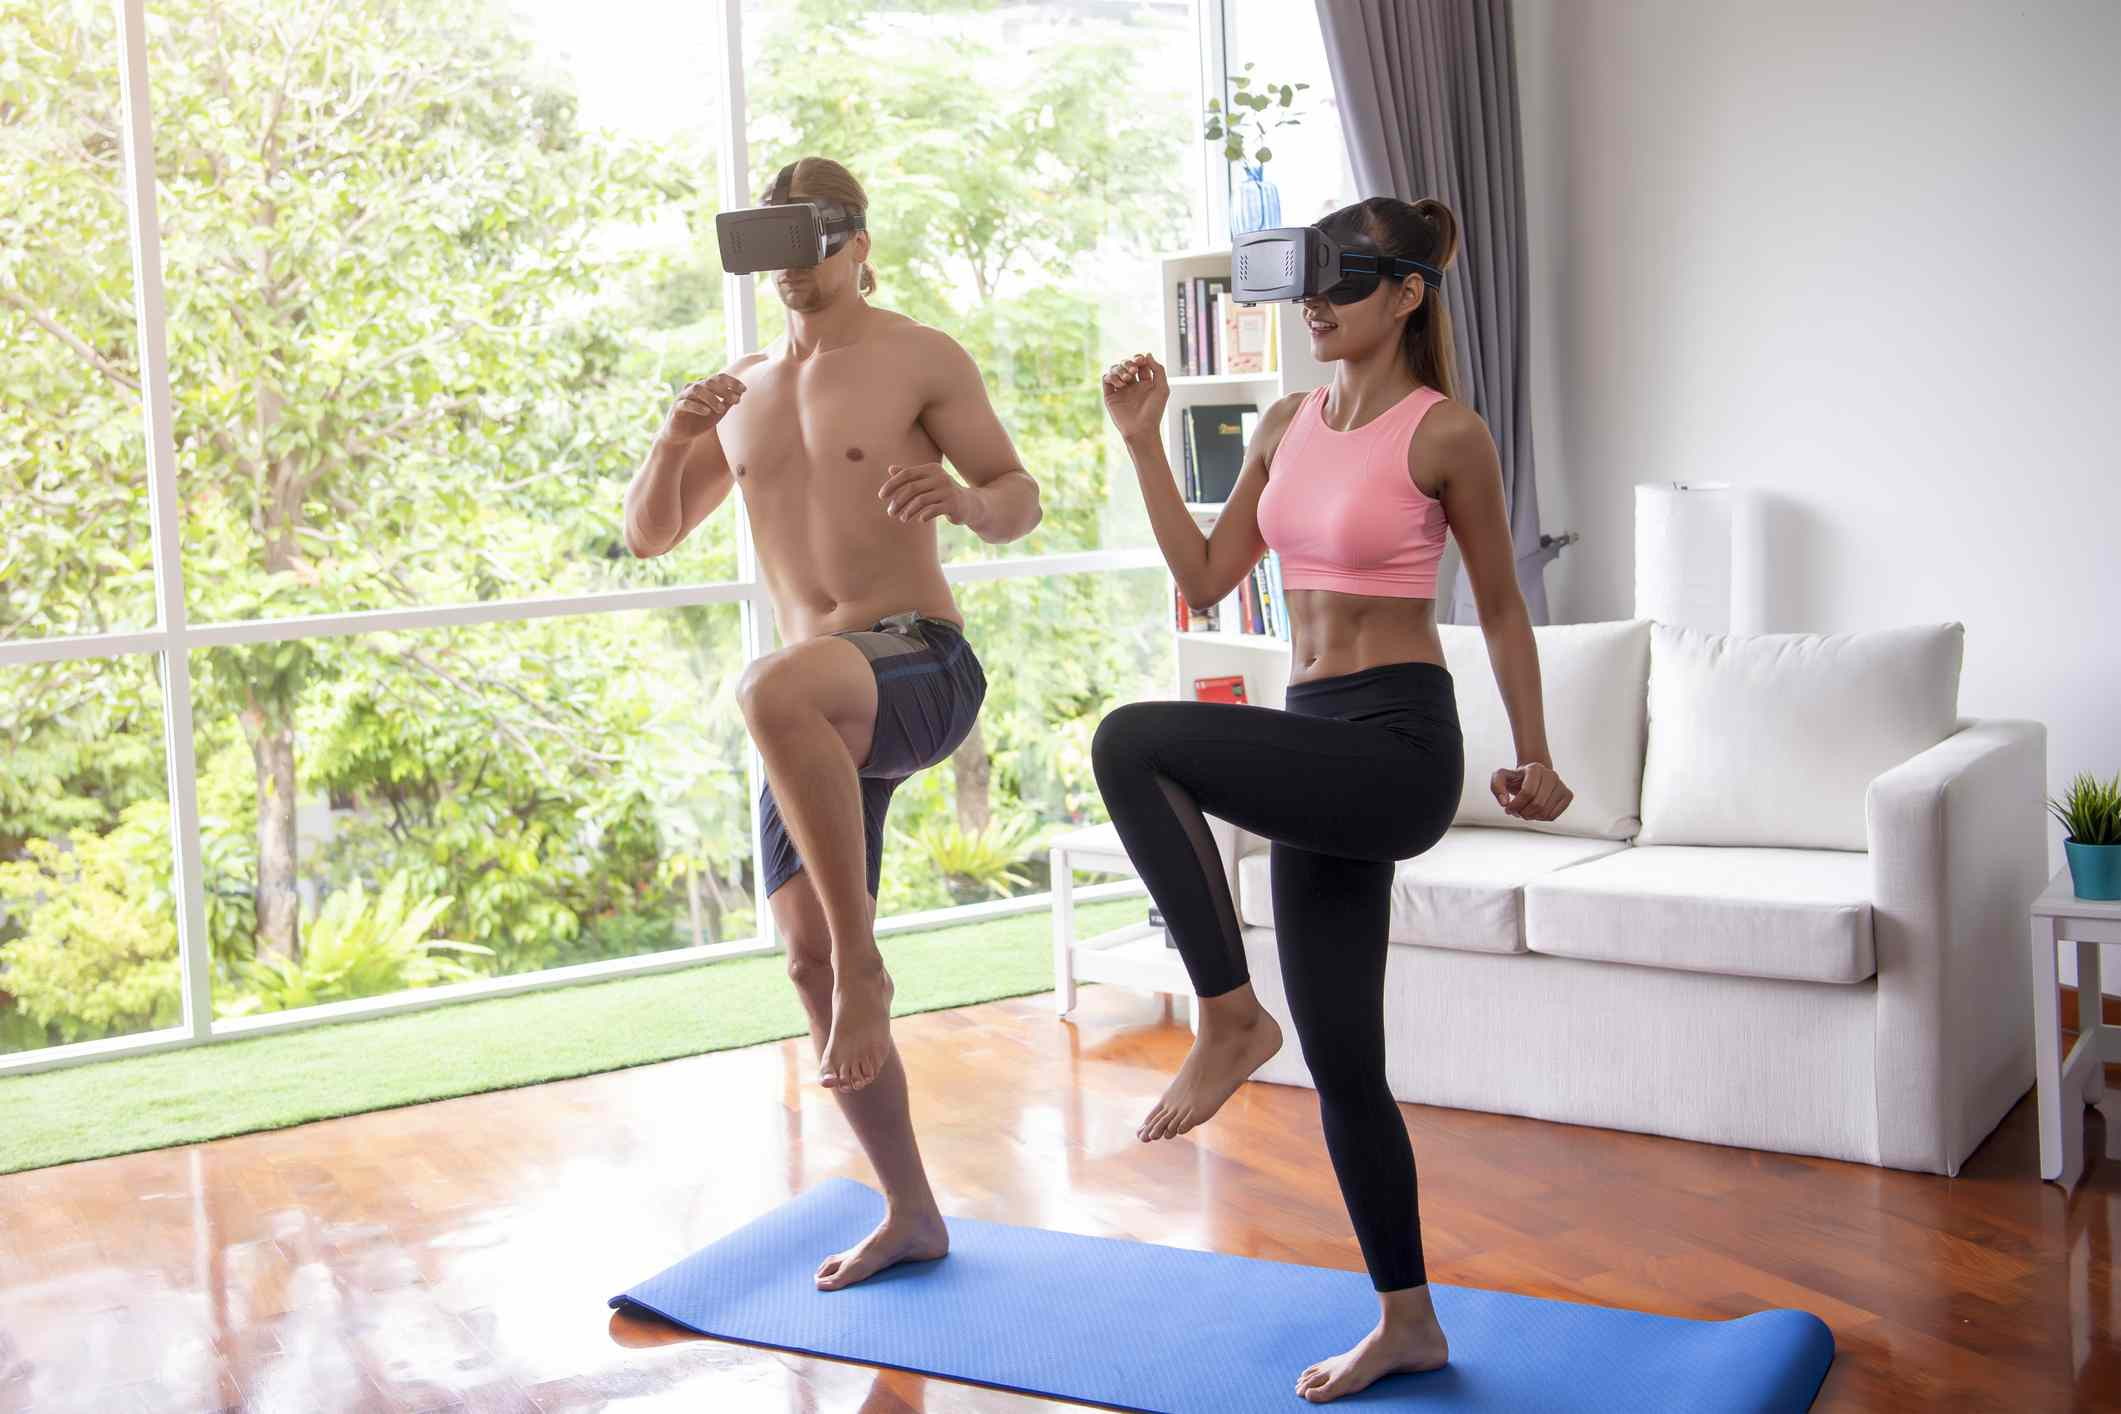 Two people exercising while wearing VR headsets in a living room.